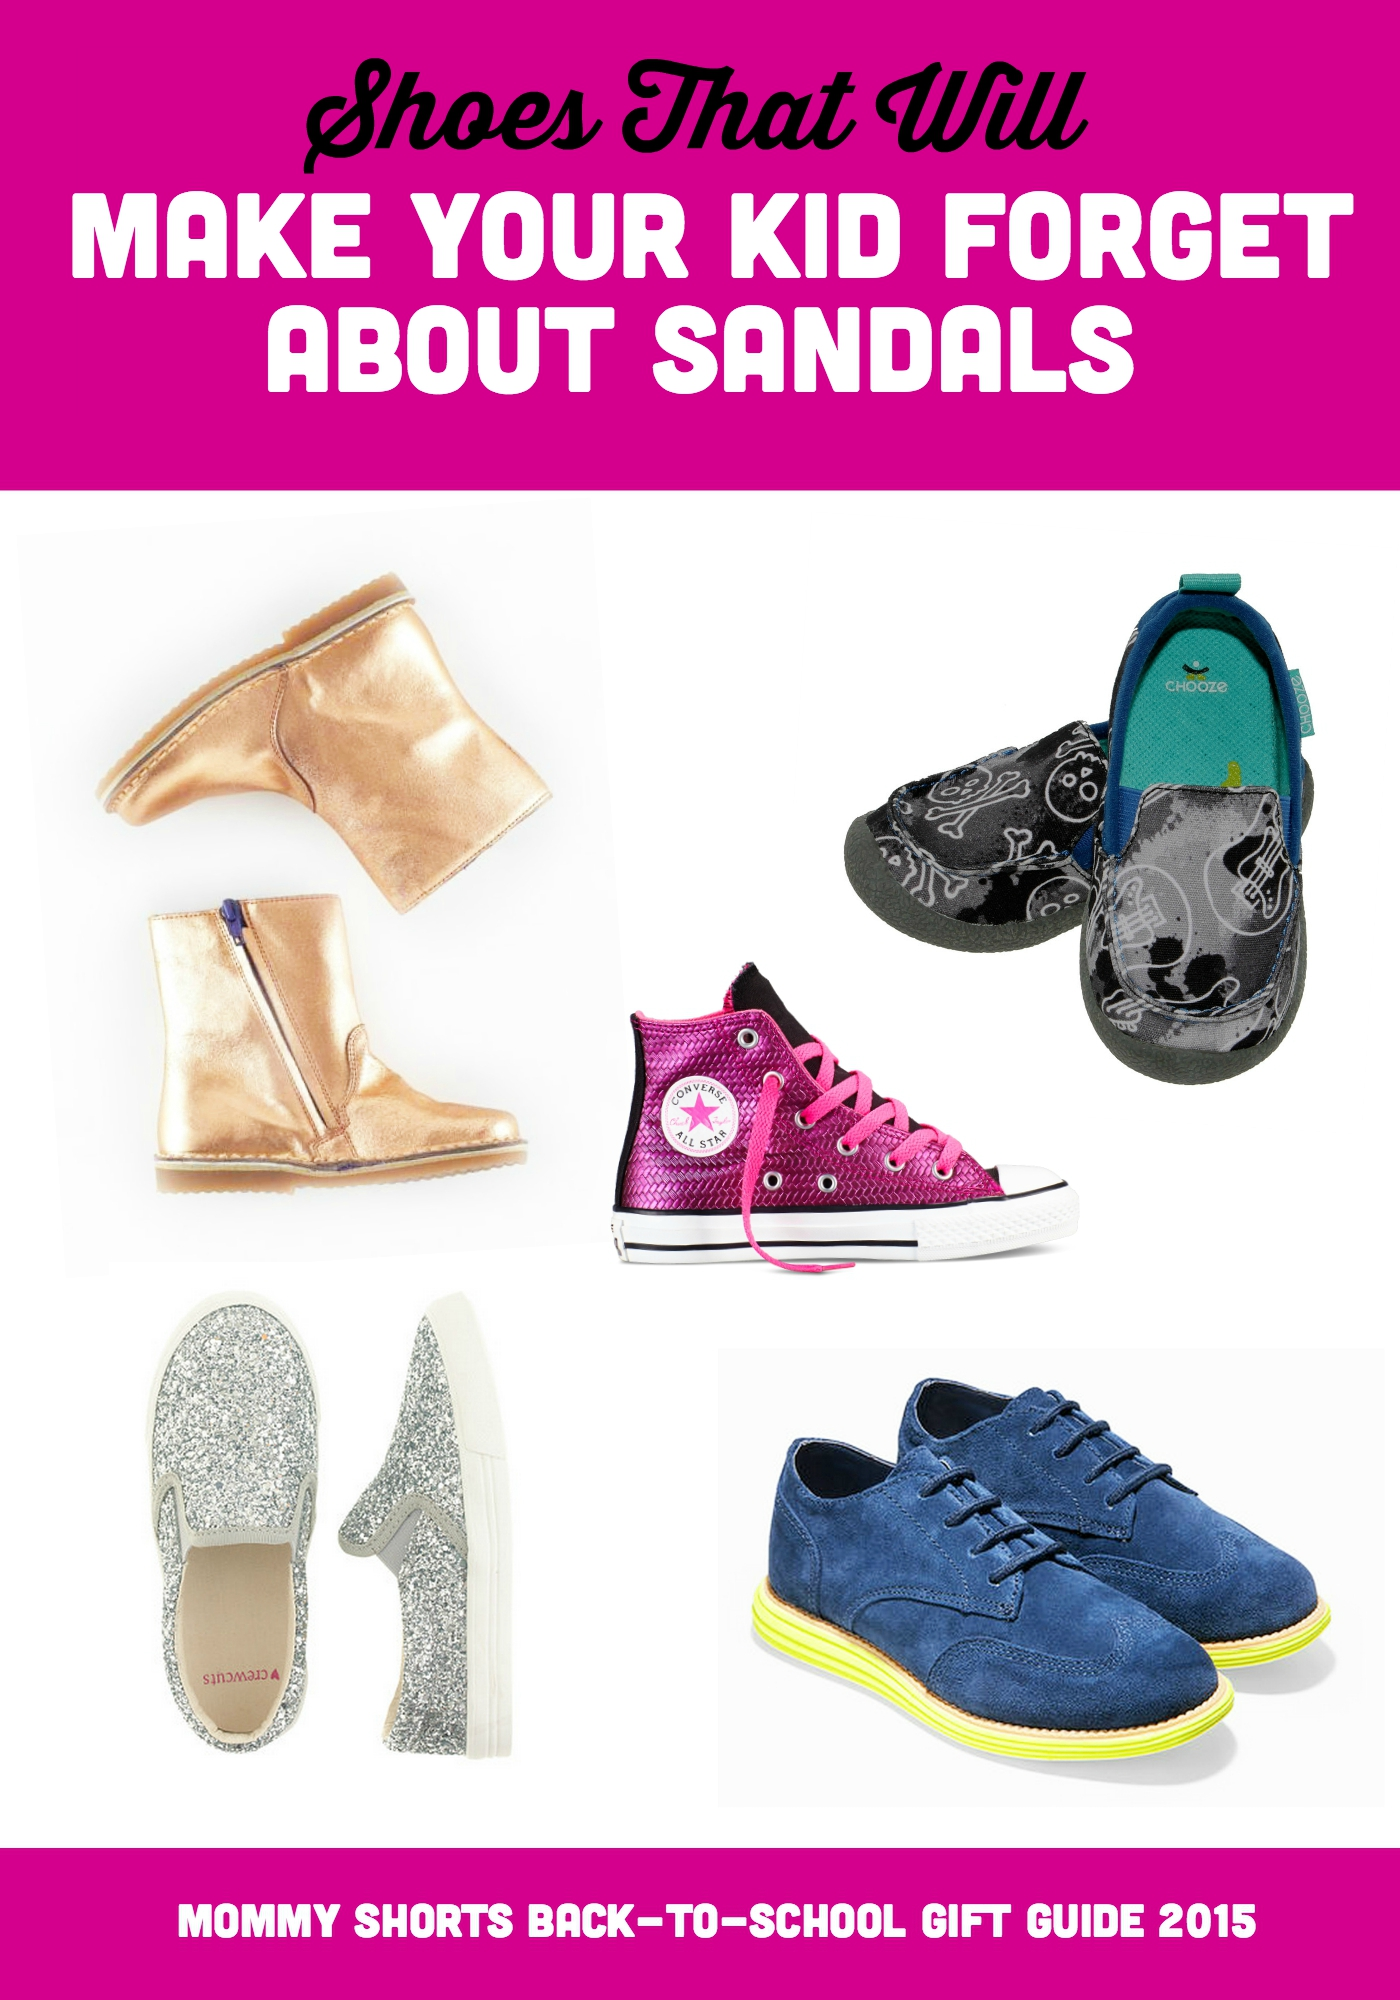 Shoes That Will Make Your Kid Forget About Sandals